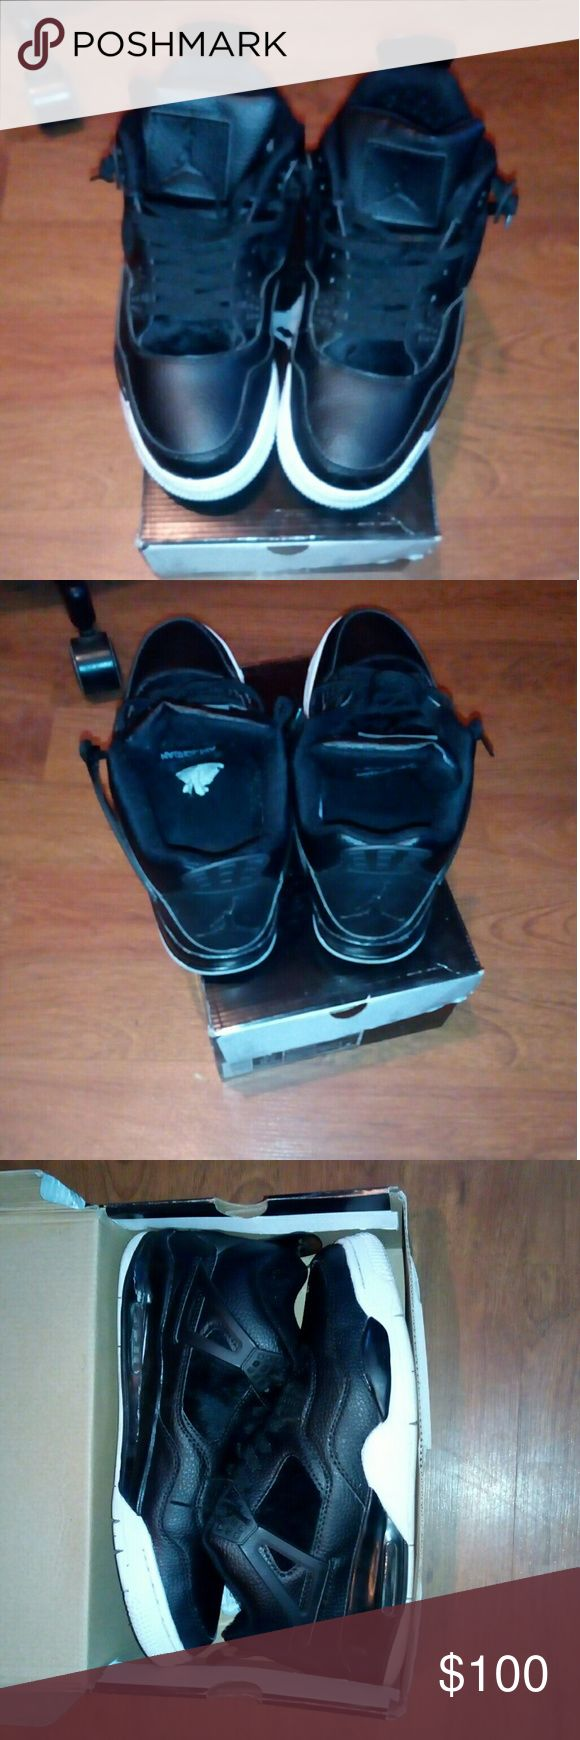 Black/white air Jordan 4 only $100 obo Nice pair of air Jordan 4 size 13 men they are black and white in color comes with box wore them 3x no crease at all selling for $100 obo Air Jordan Shoes Athletic Shoes